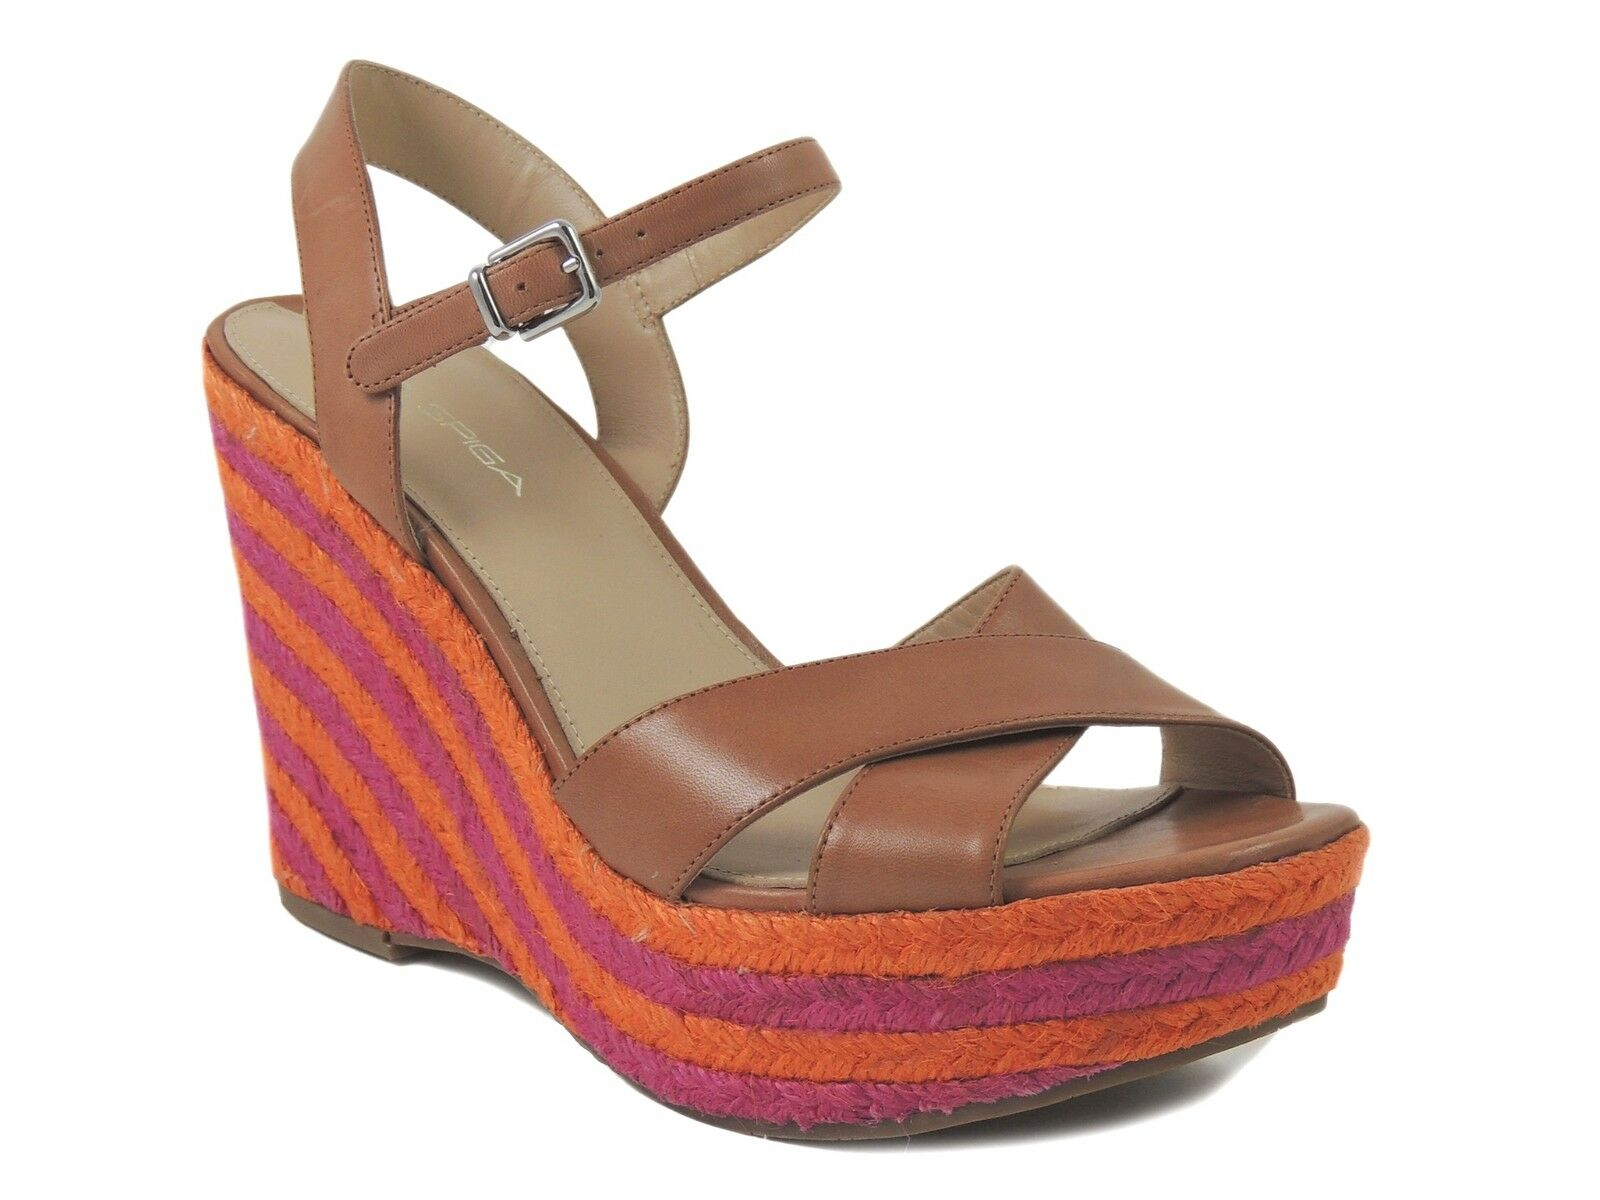 Via Spiga Women's Evelina Wedge Sandals Leather Cinnamon Brown Size 8.5 M